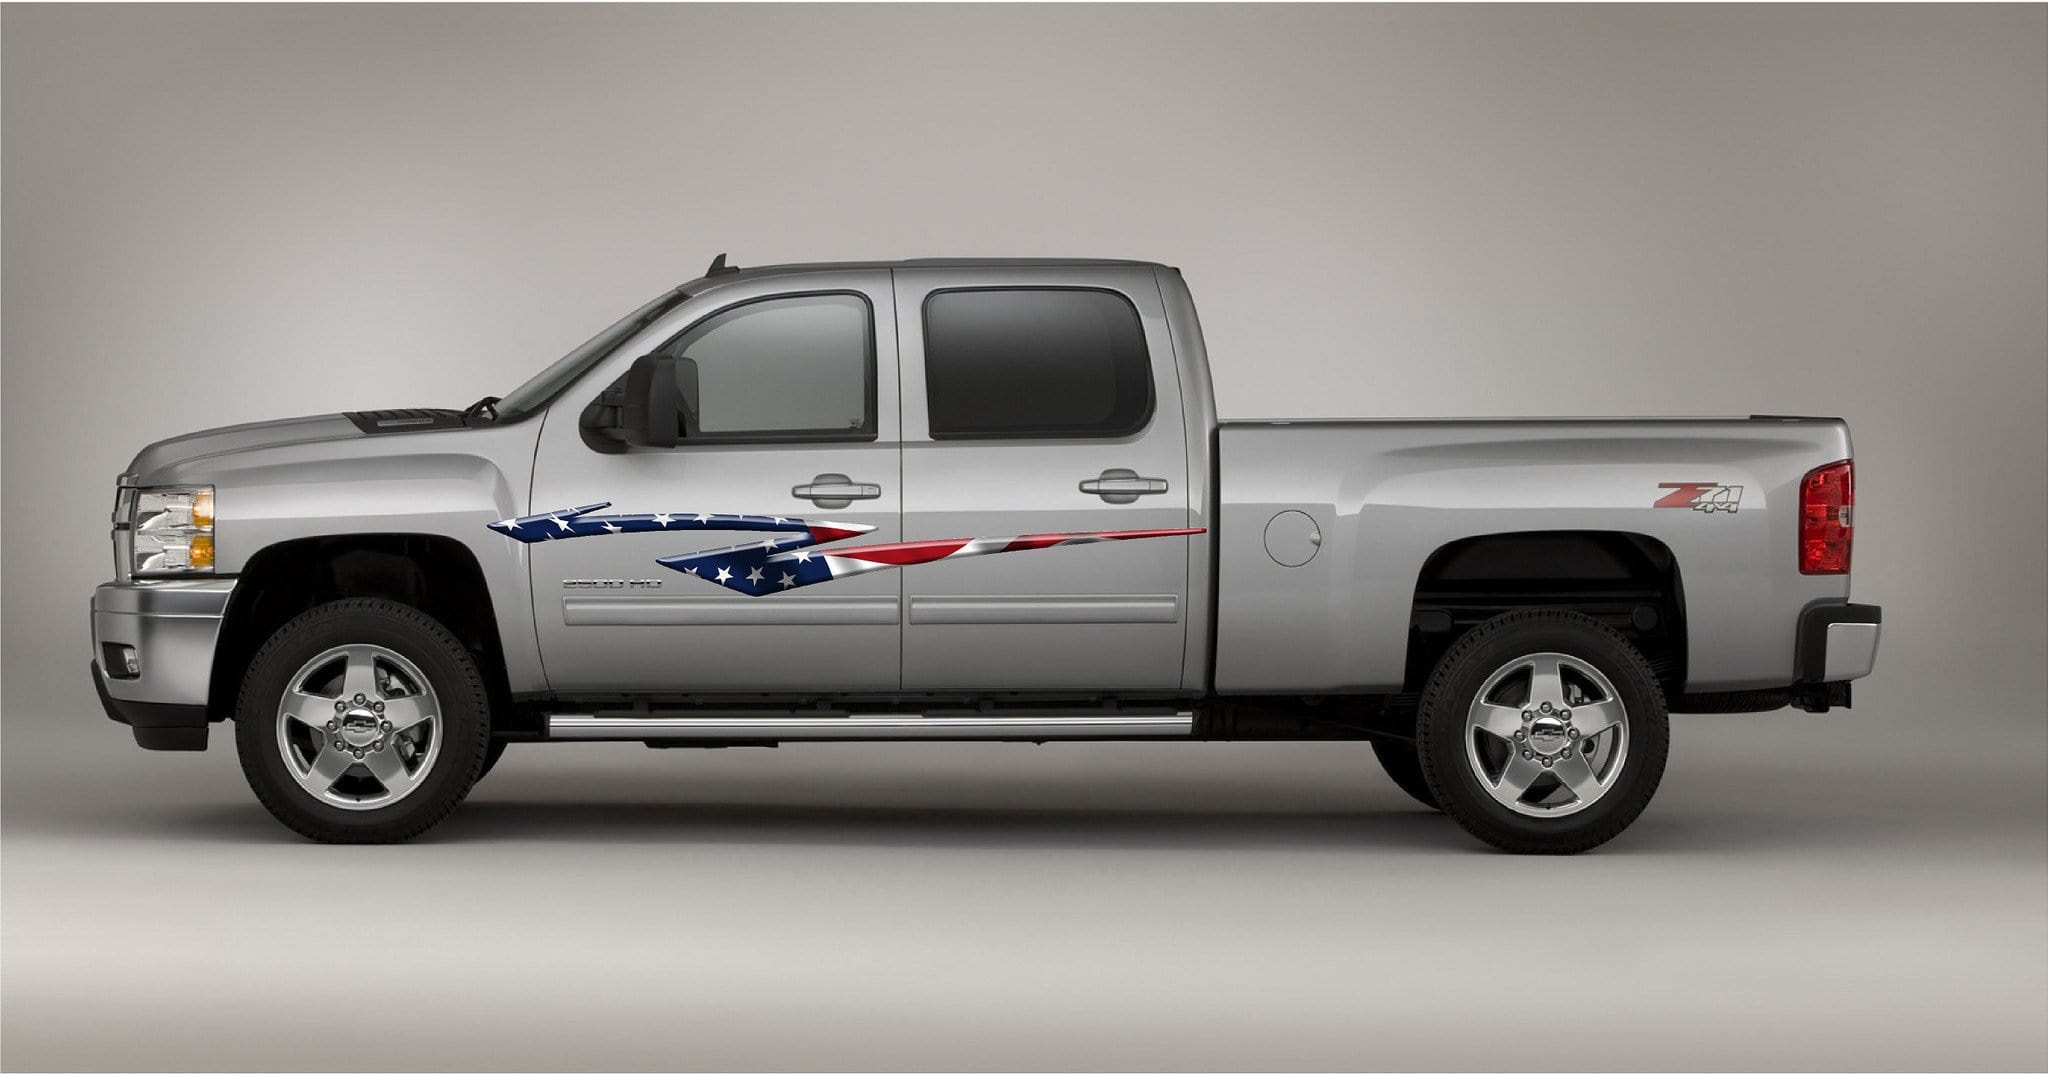 American Flag Truck Decals Boat Usa Stripes Graphics American - Truck decals